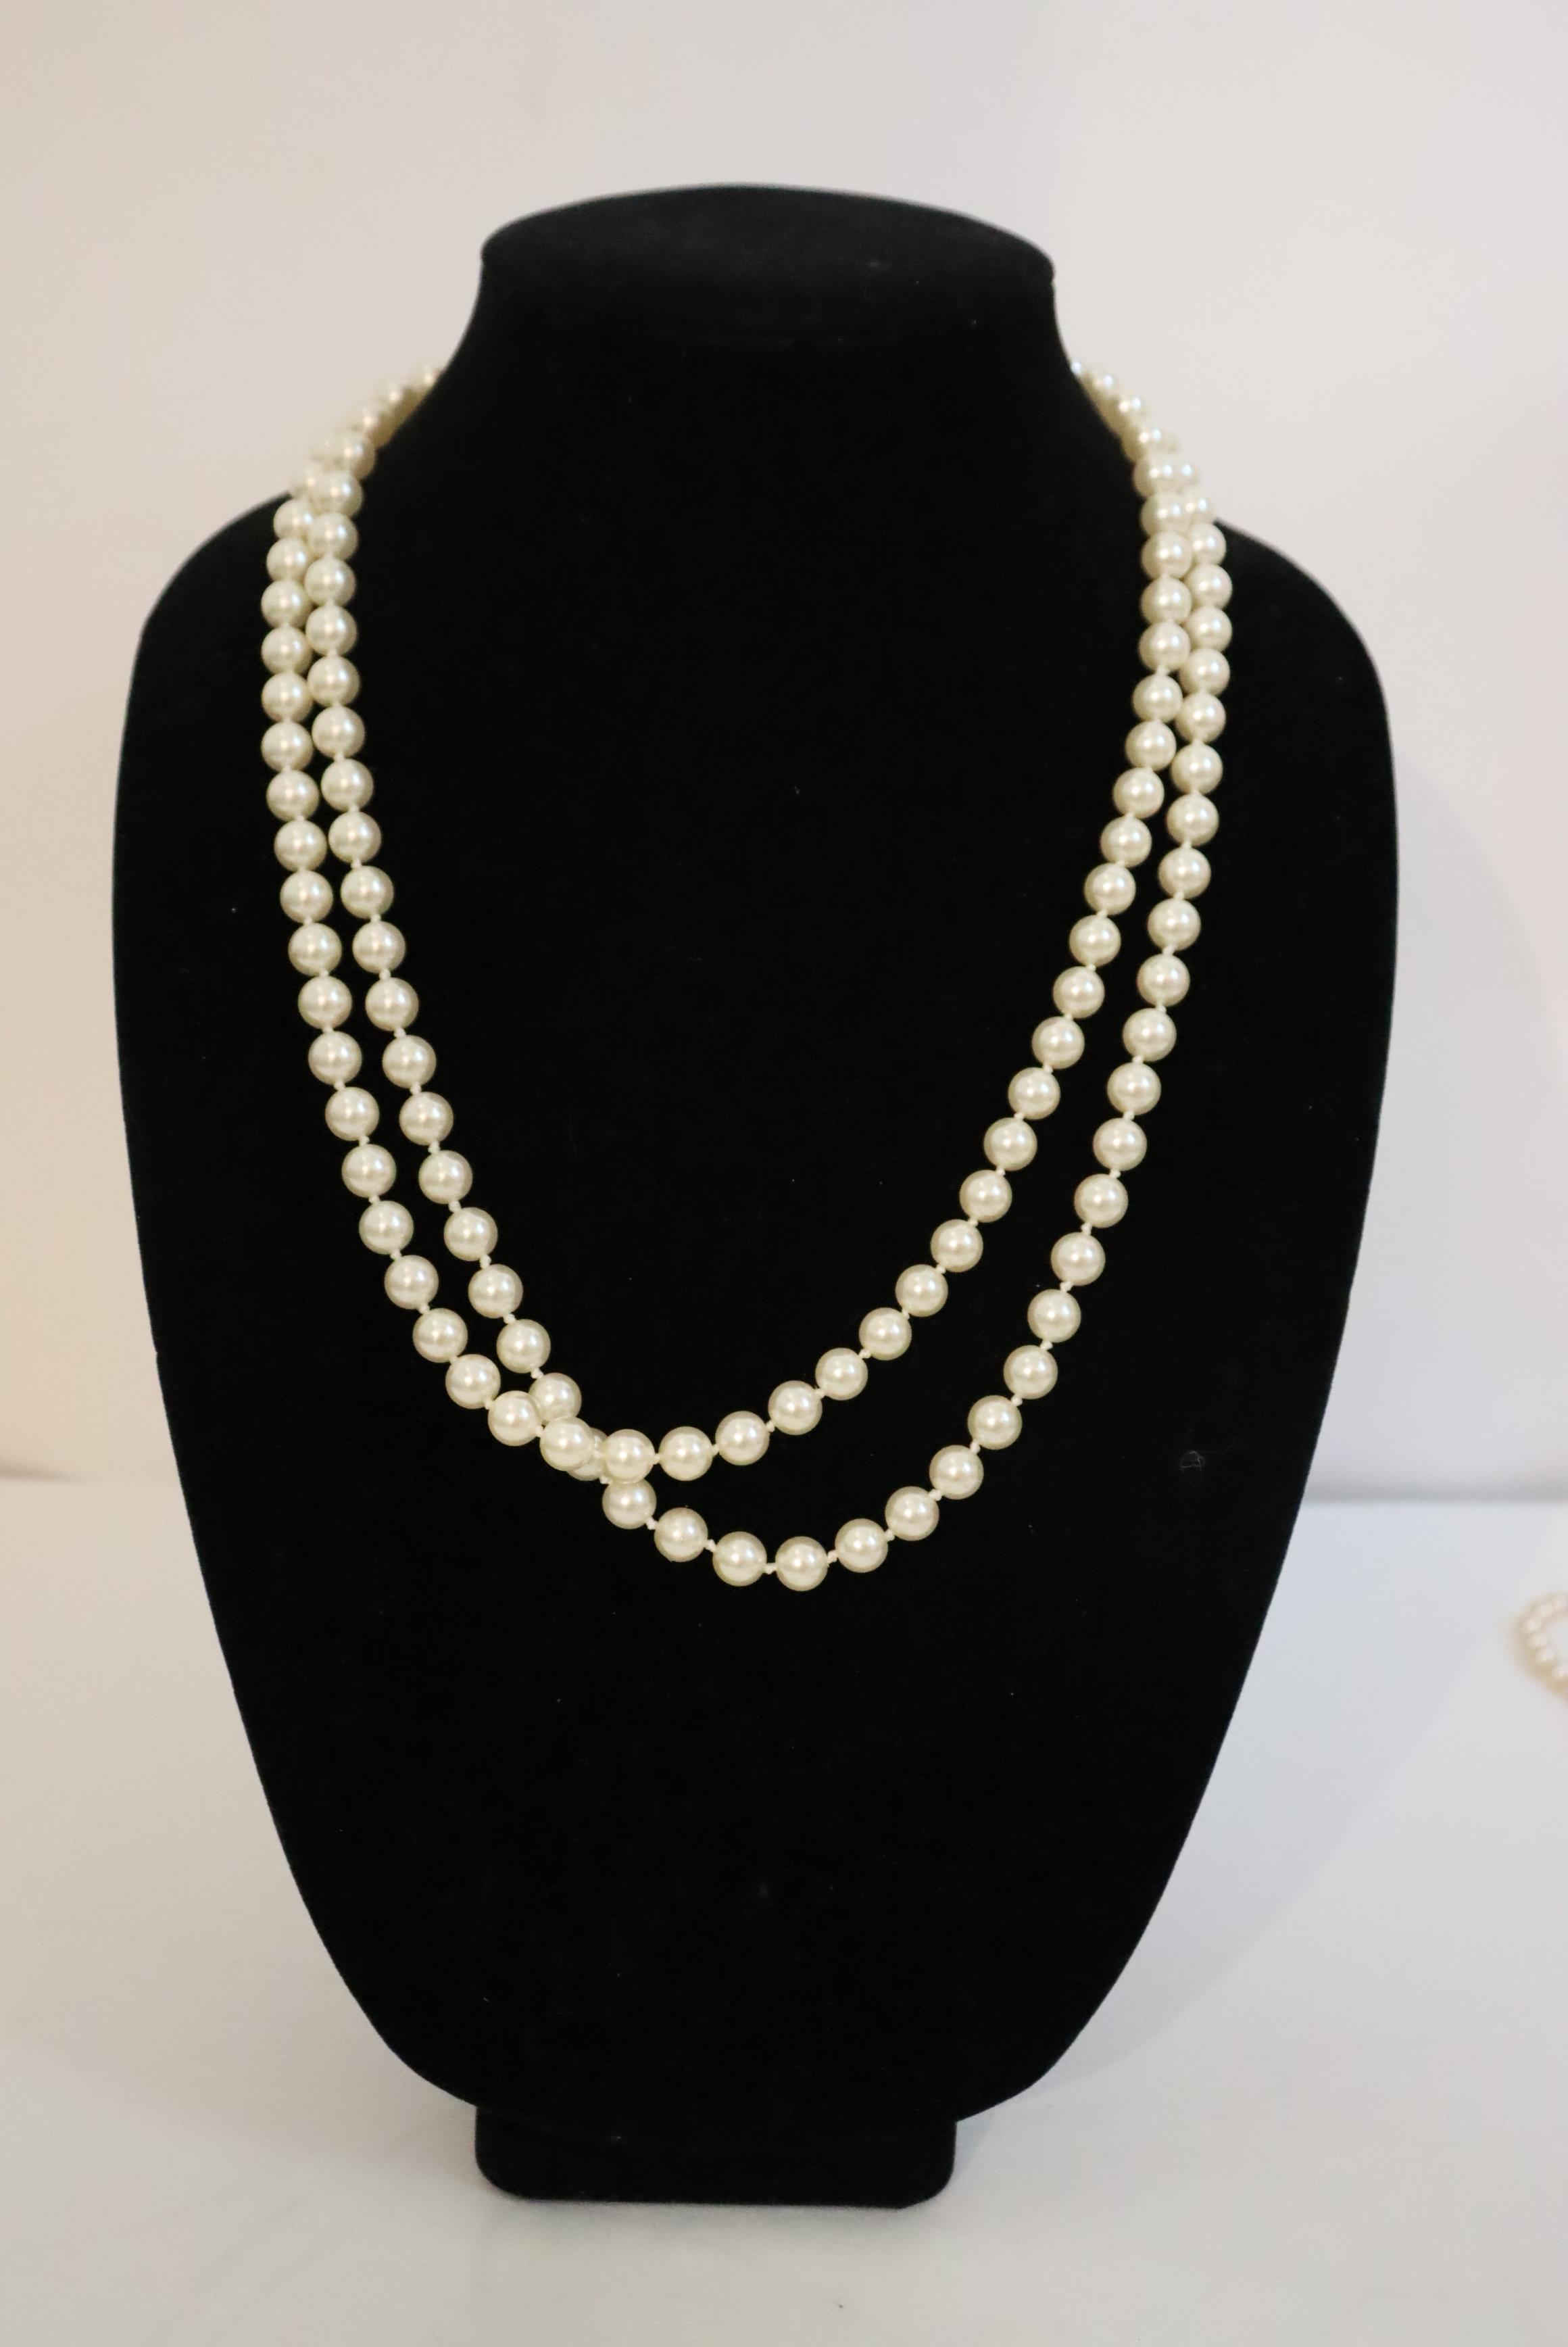 Large Collection of (10) Pearl / Beaded Necklaces - Image 6 of 20